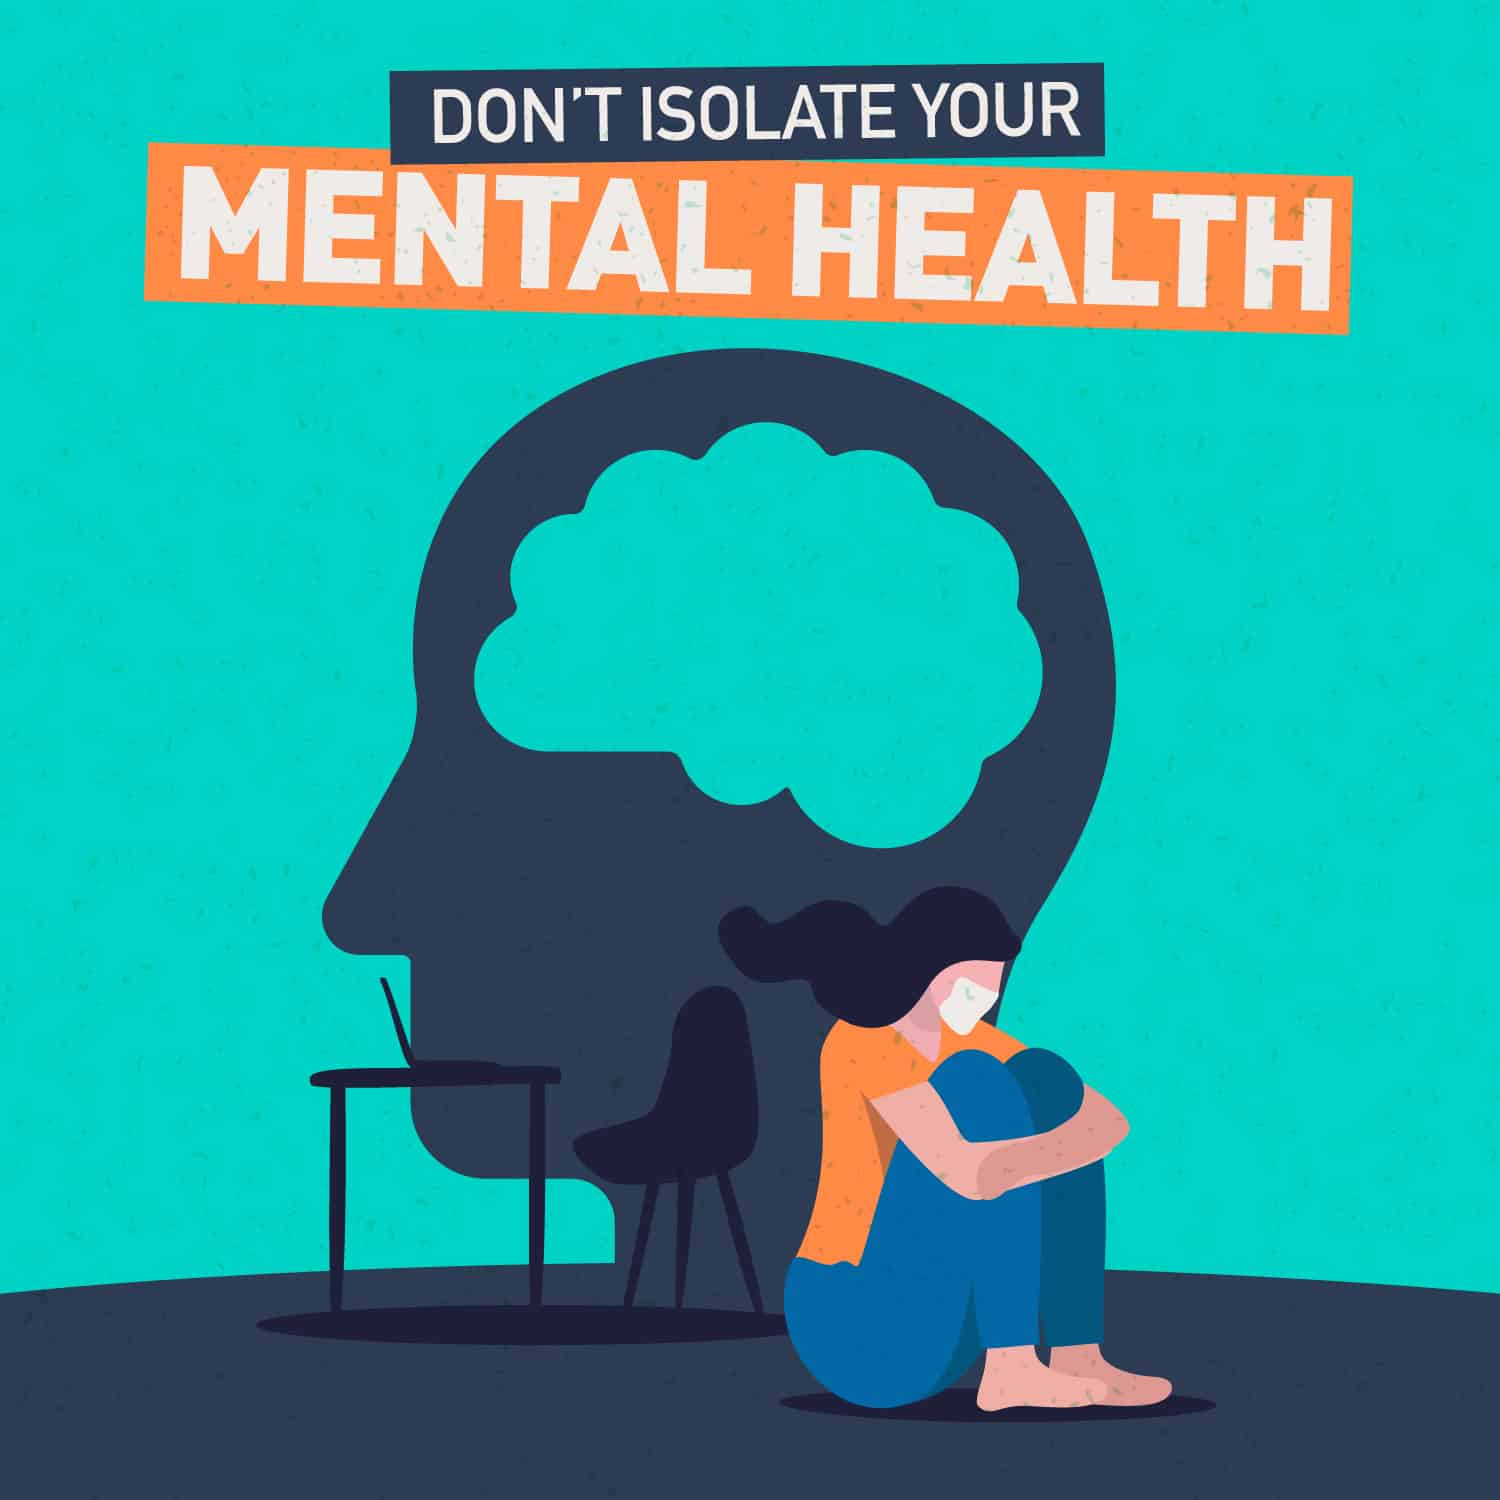 Coronavirus – Don't isolate your mental health